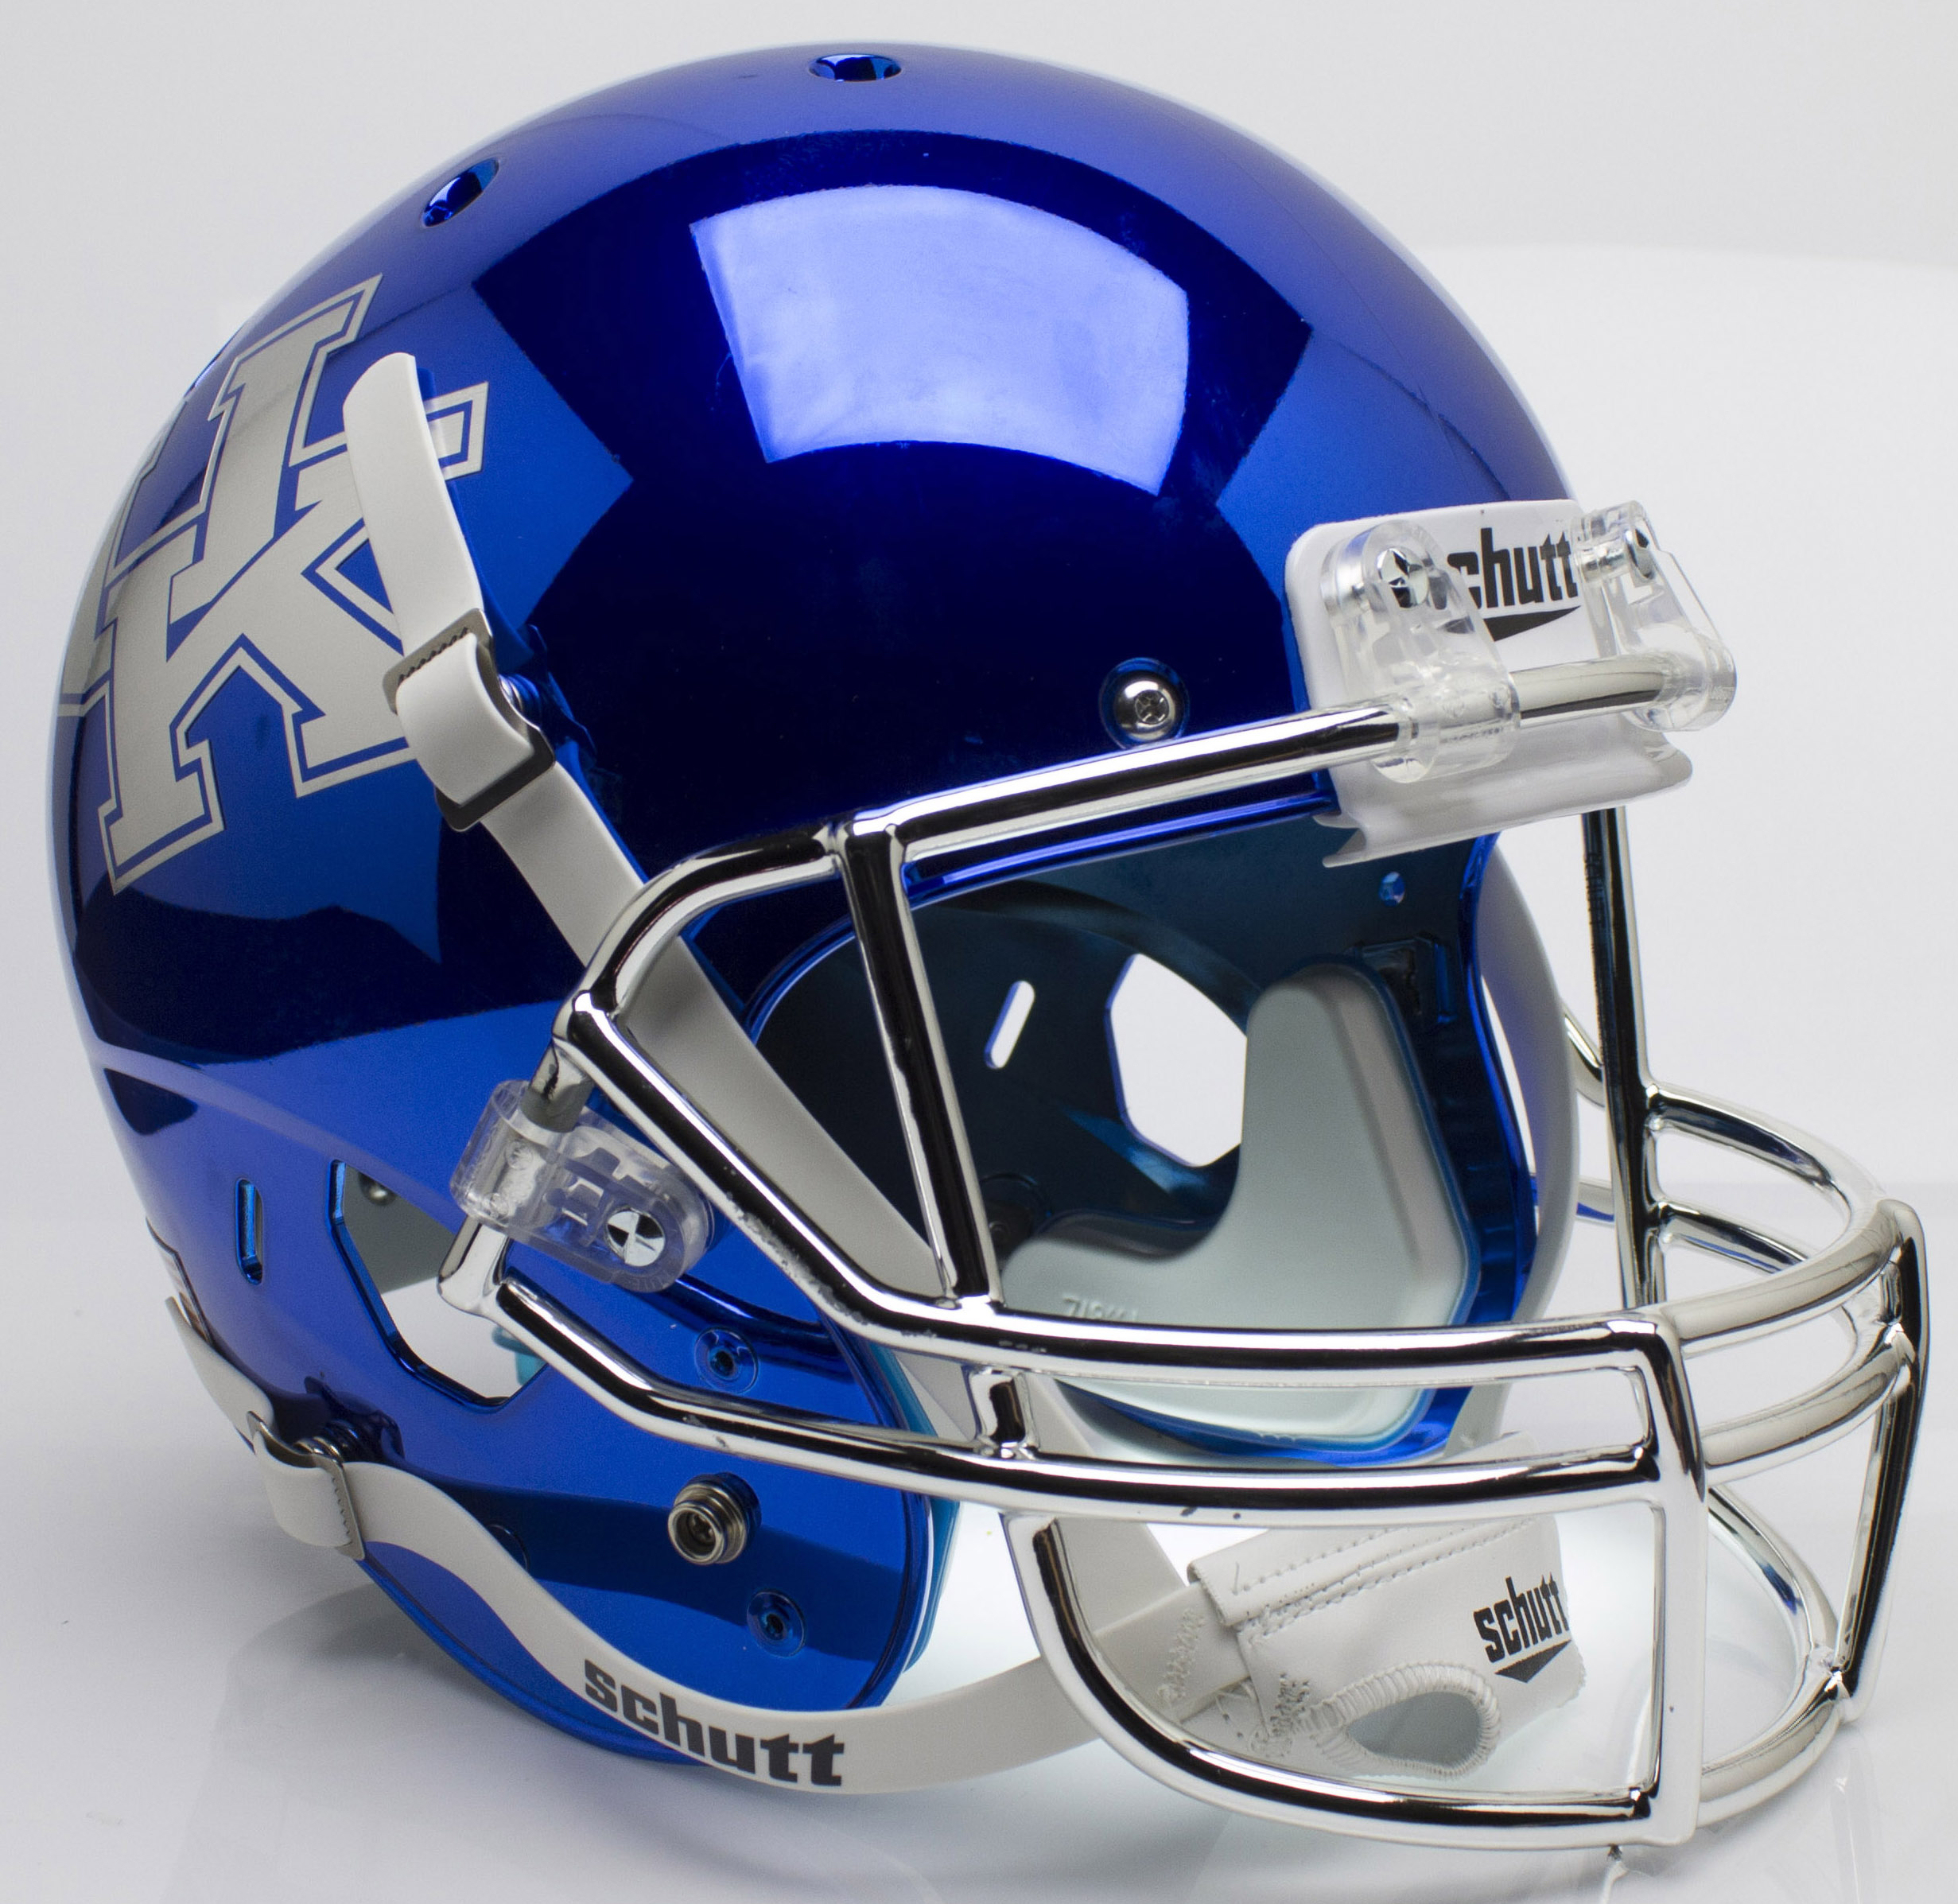 Kentucky Wildcats Full XP Replica Football Helmet Schutt <B>Chrome Blue</B>